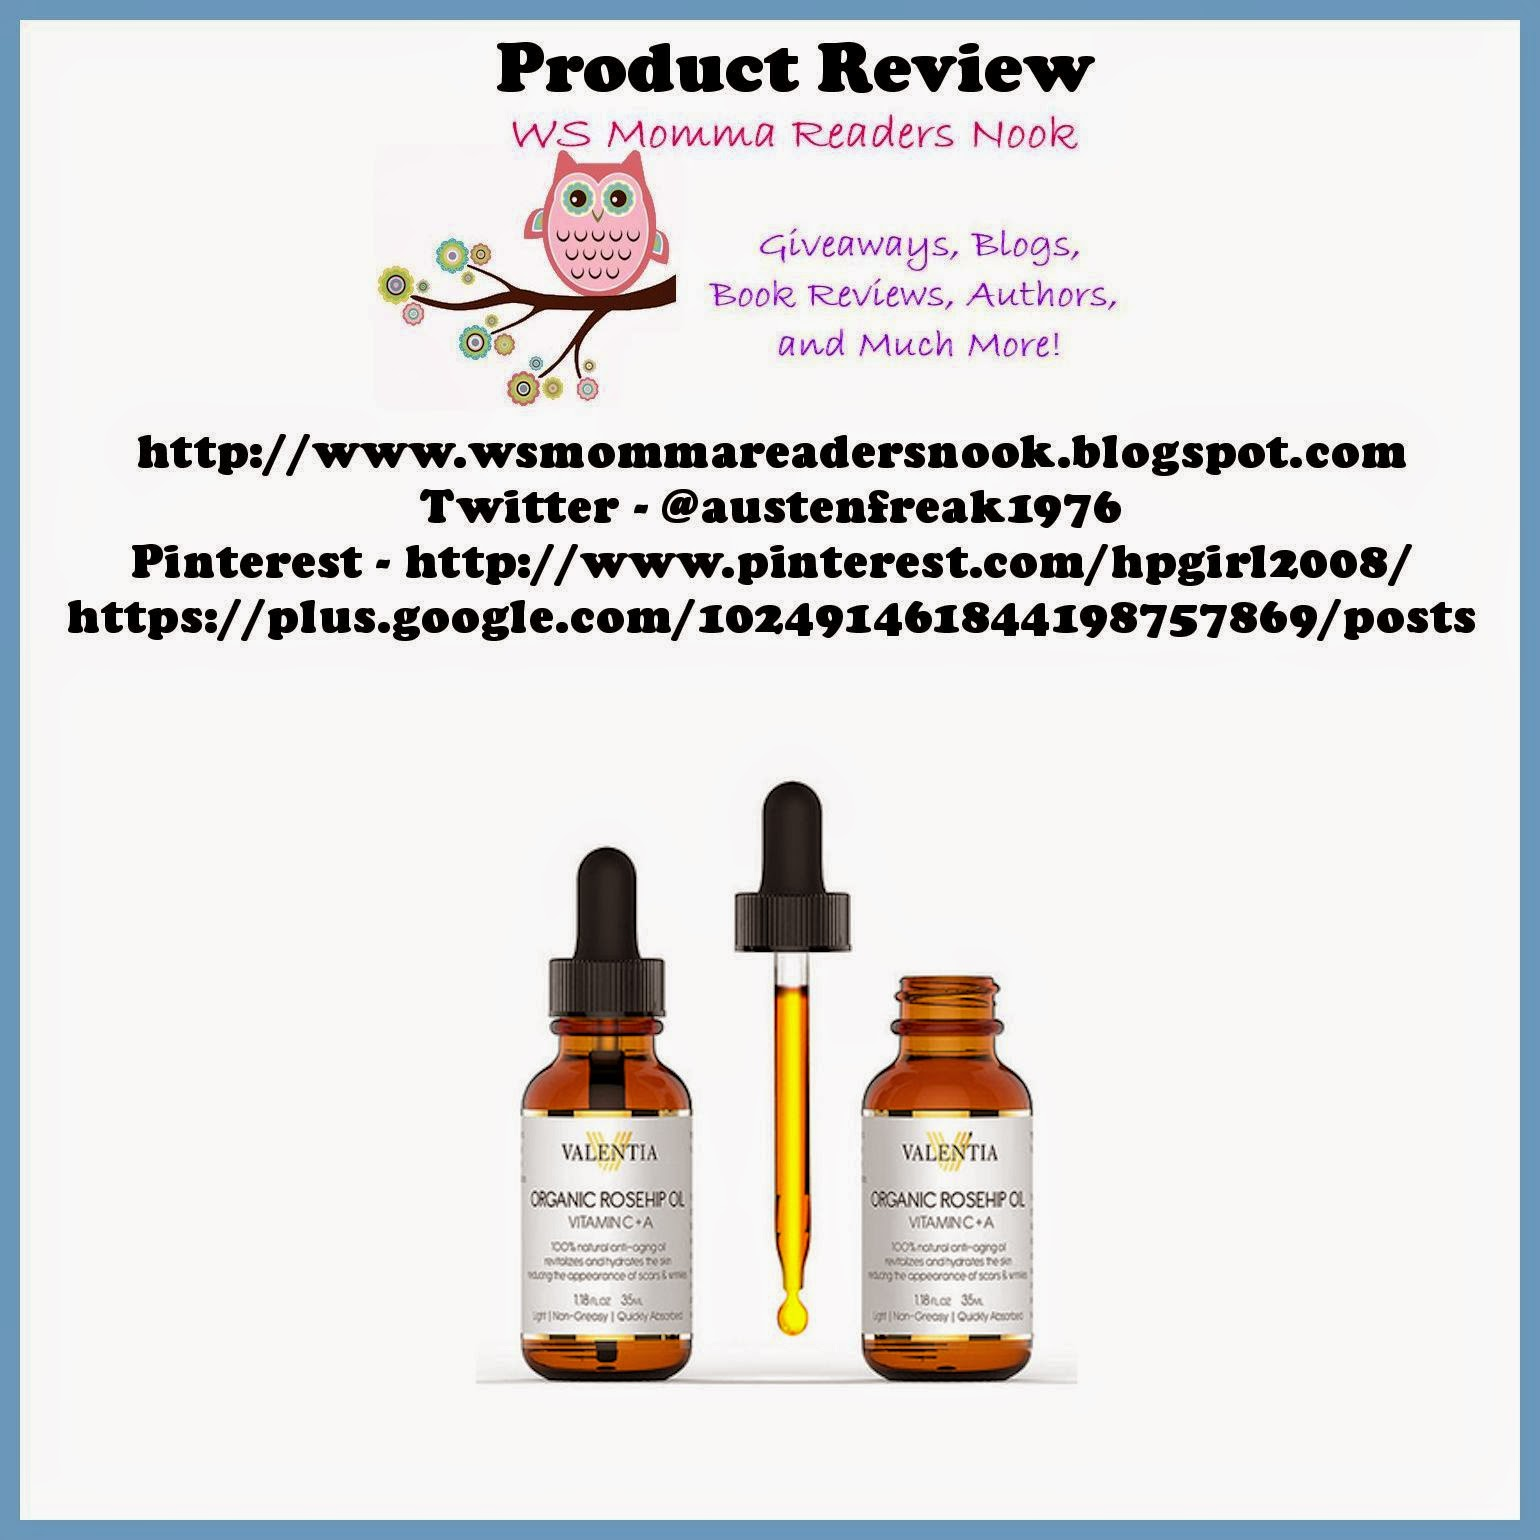 http://www.amazon.com/organic-rosehip-oil-anti-aging-generations/dp/b00jsacnmg